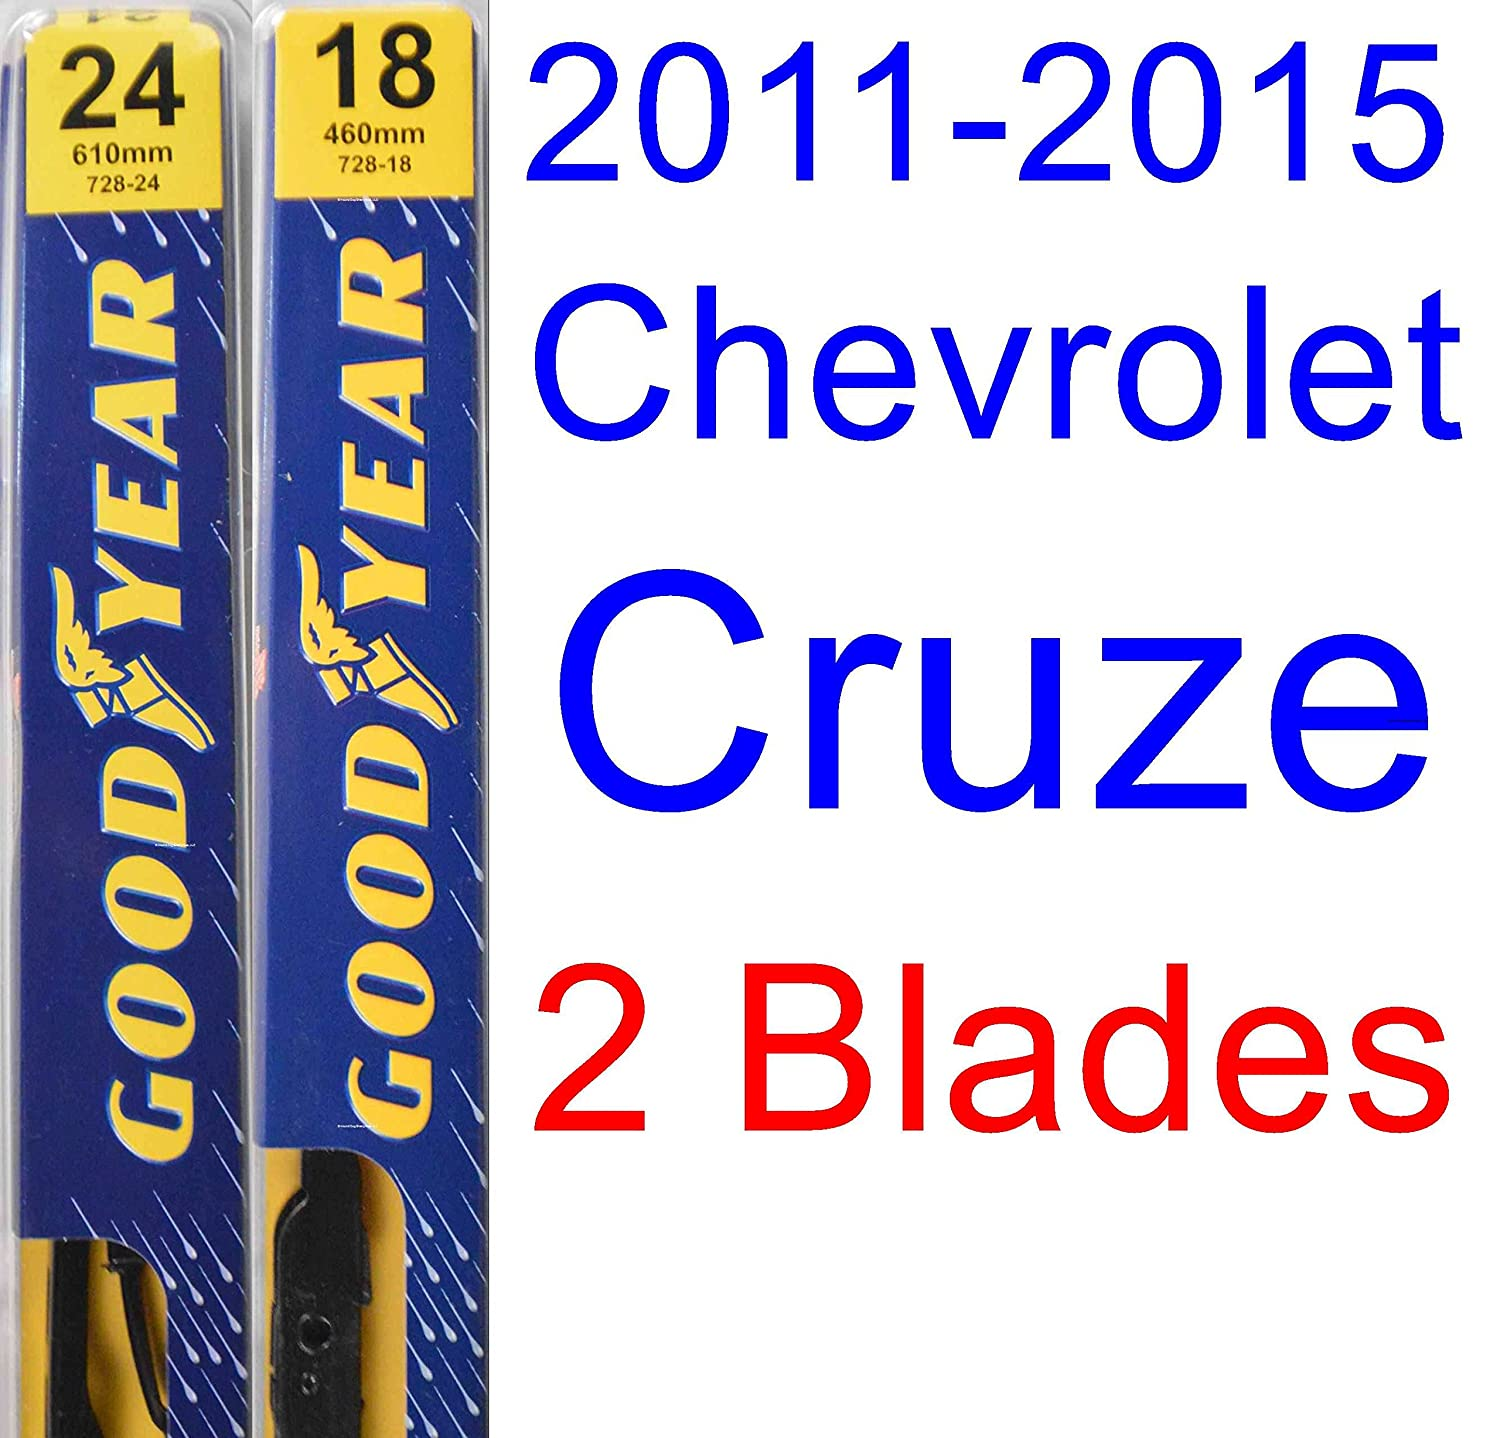 2011 2015 chevrolet cruze replacement wiper blade set kit. Black Bedroom Furniture Sets. Home Design Ideas